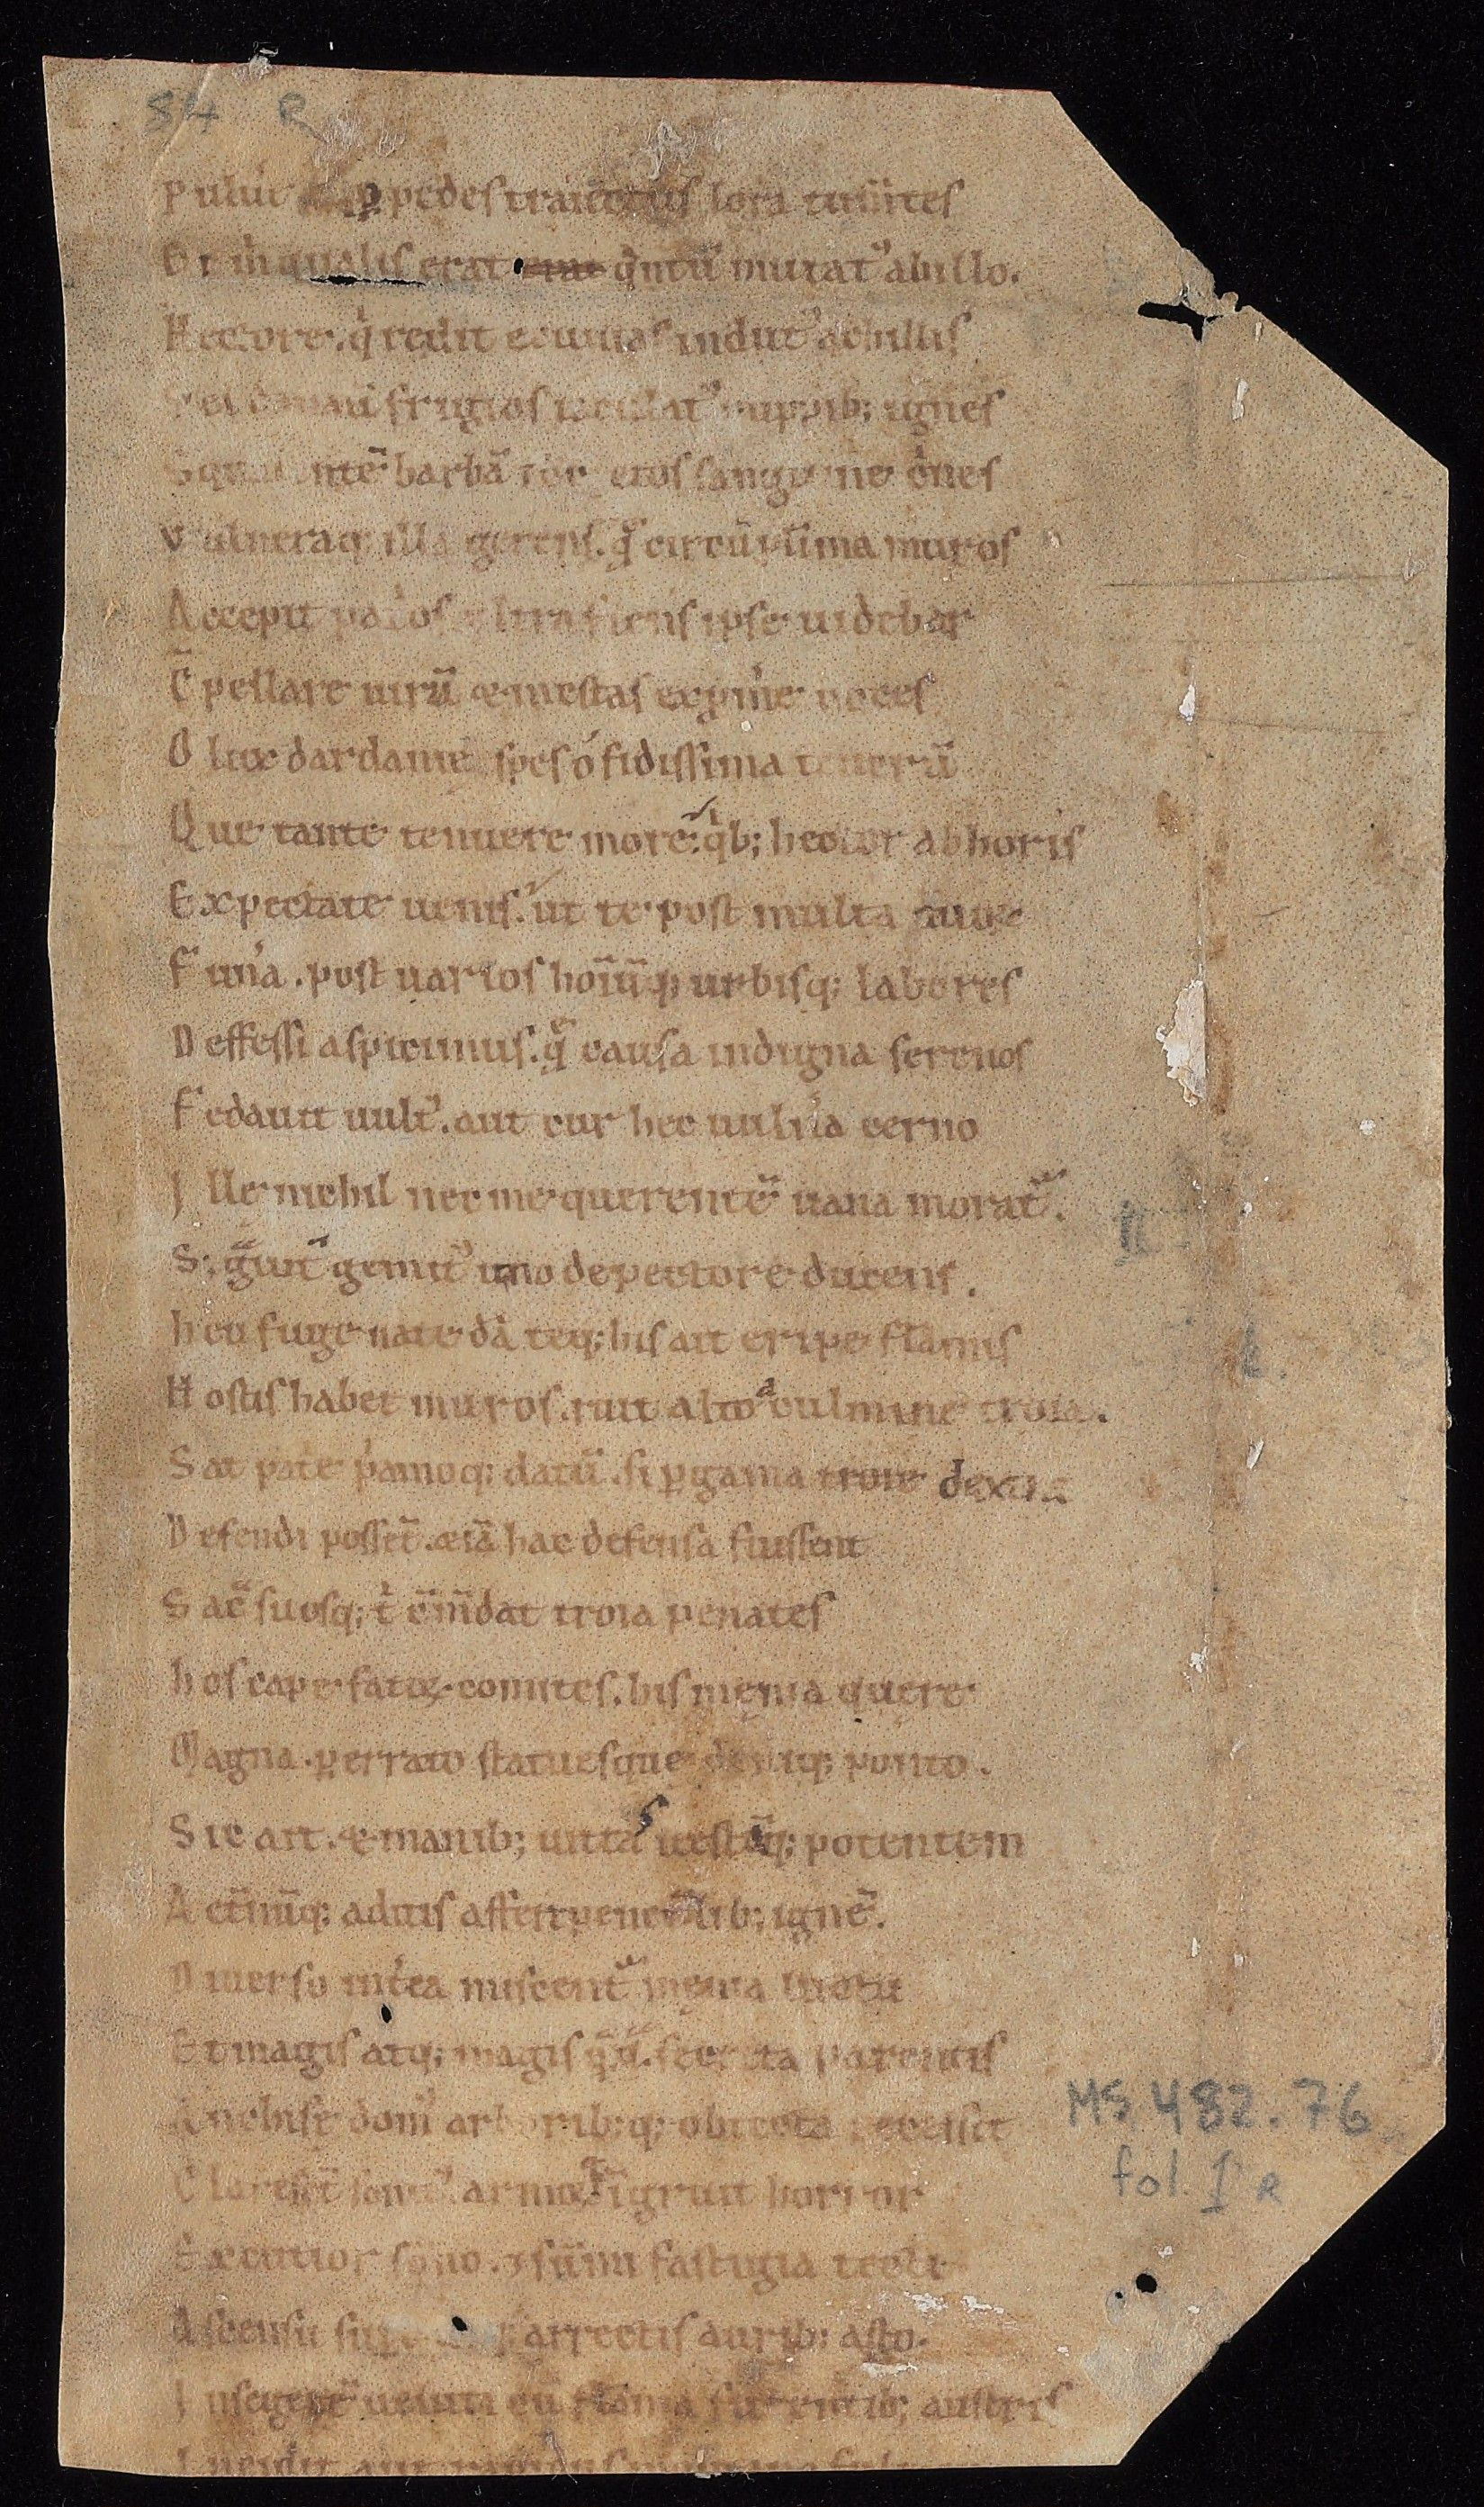 Aeneid Fragment Beinecke MS 482.76